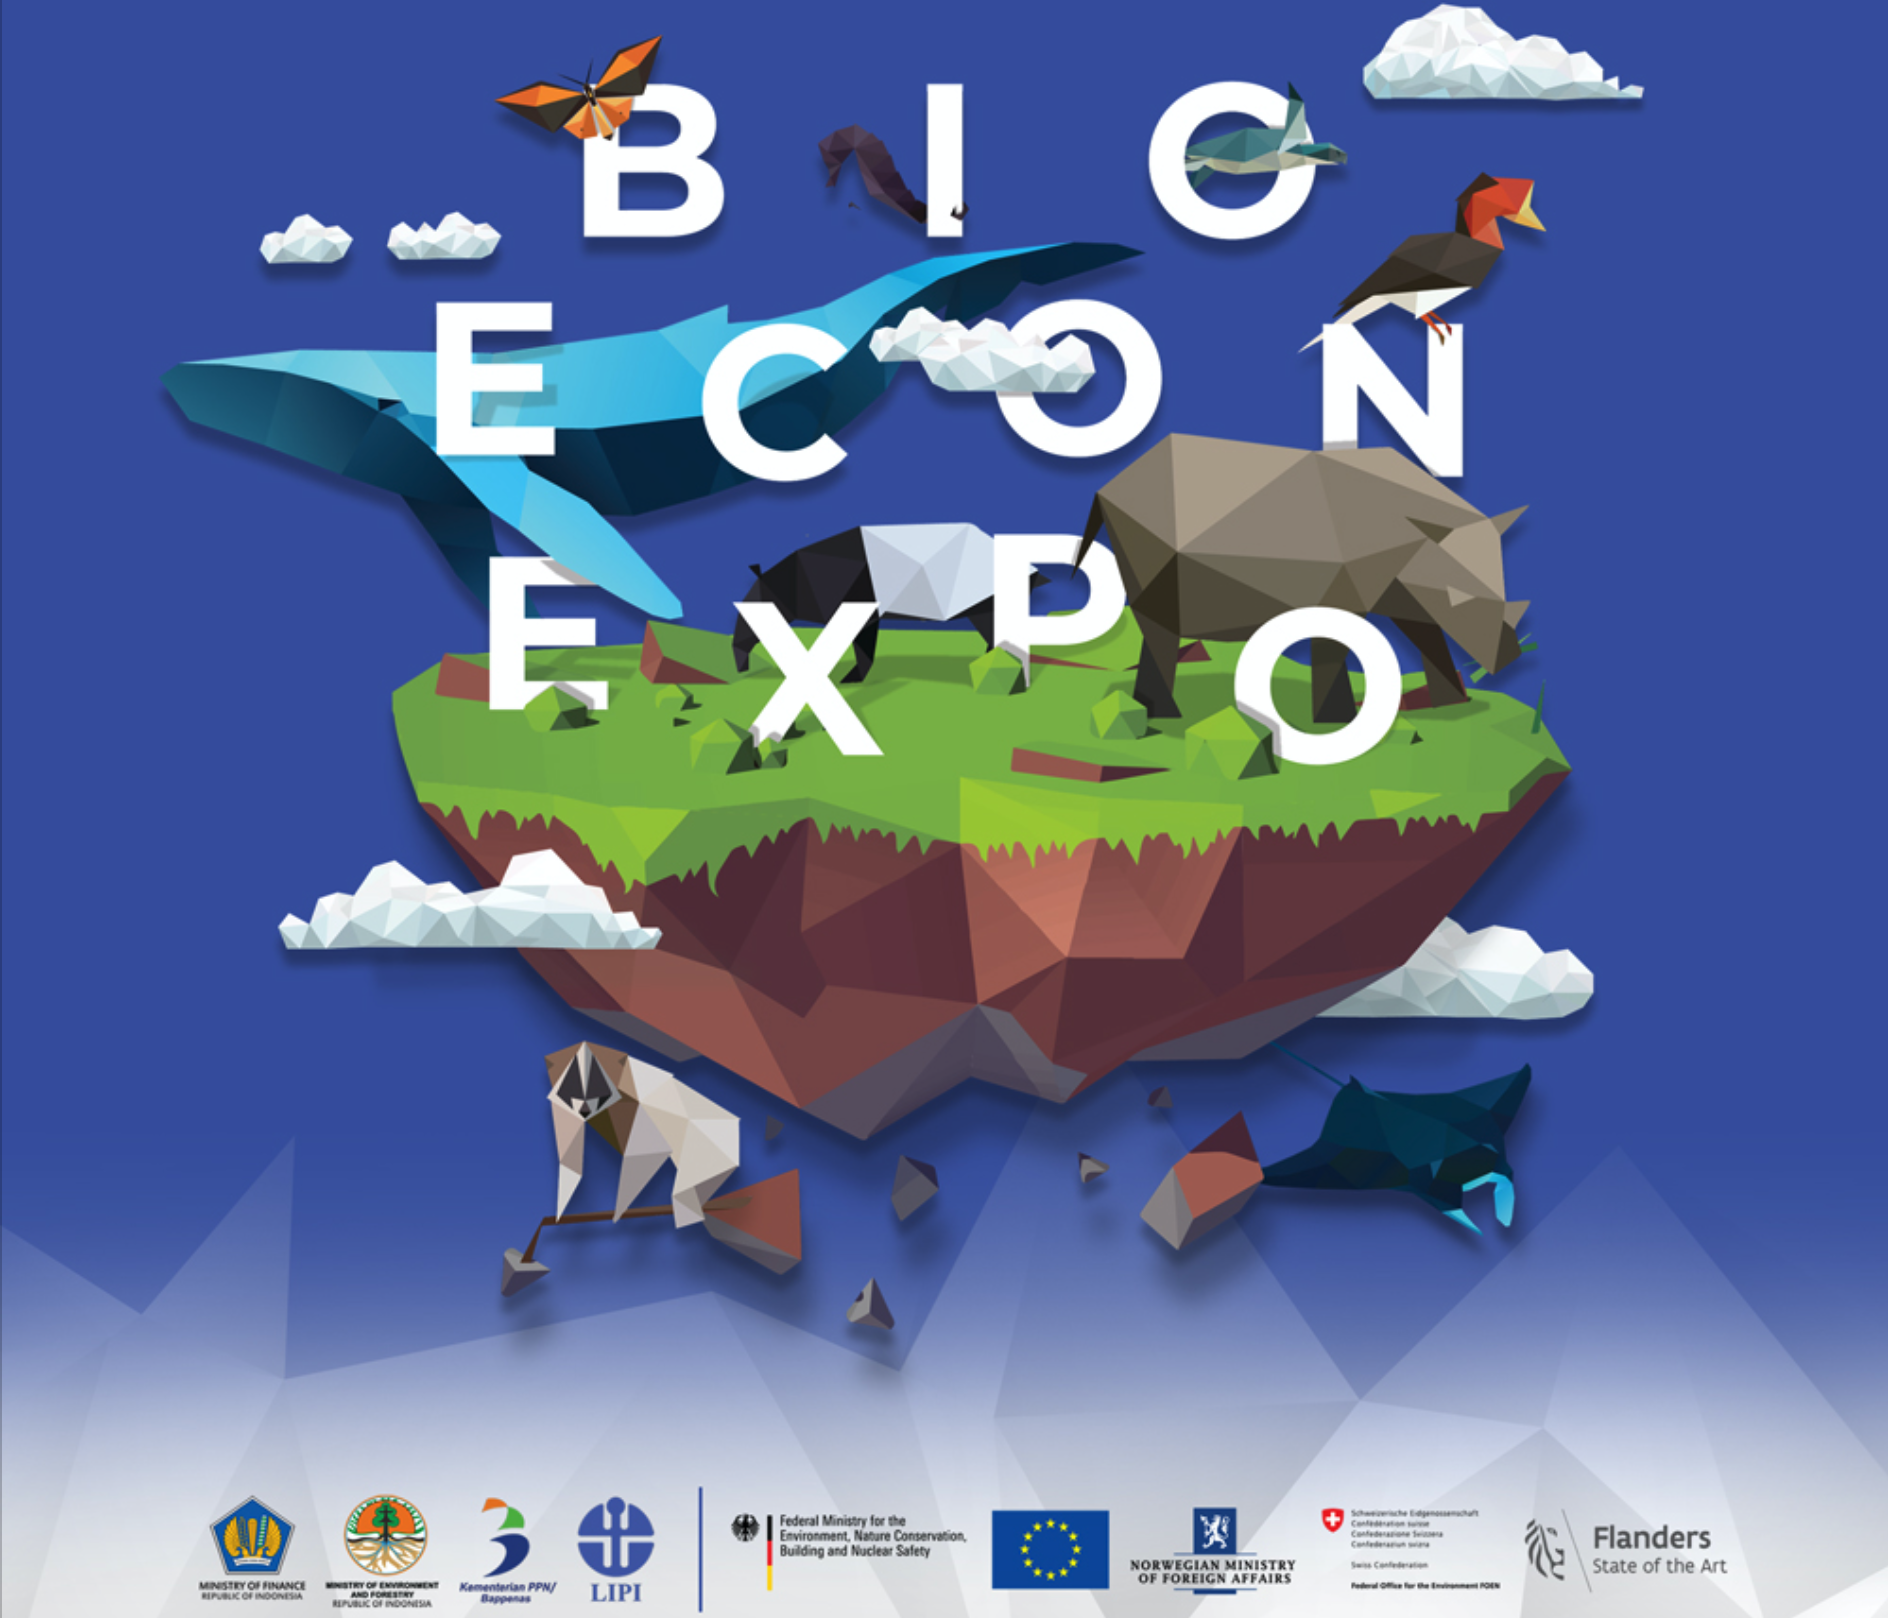 Indonesia bio-econ expo